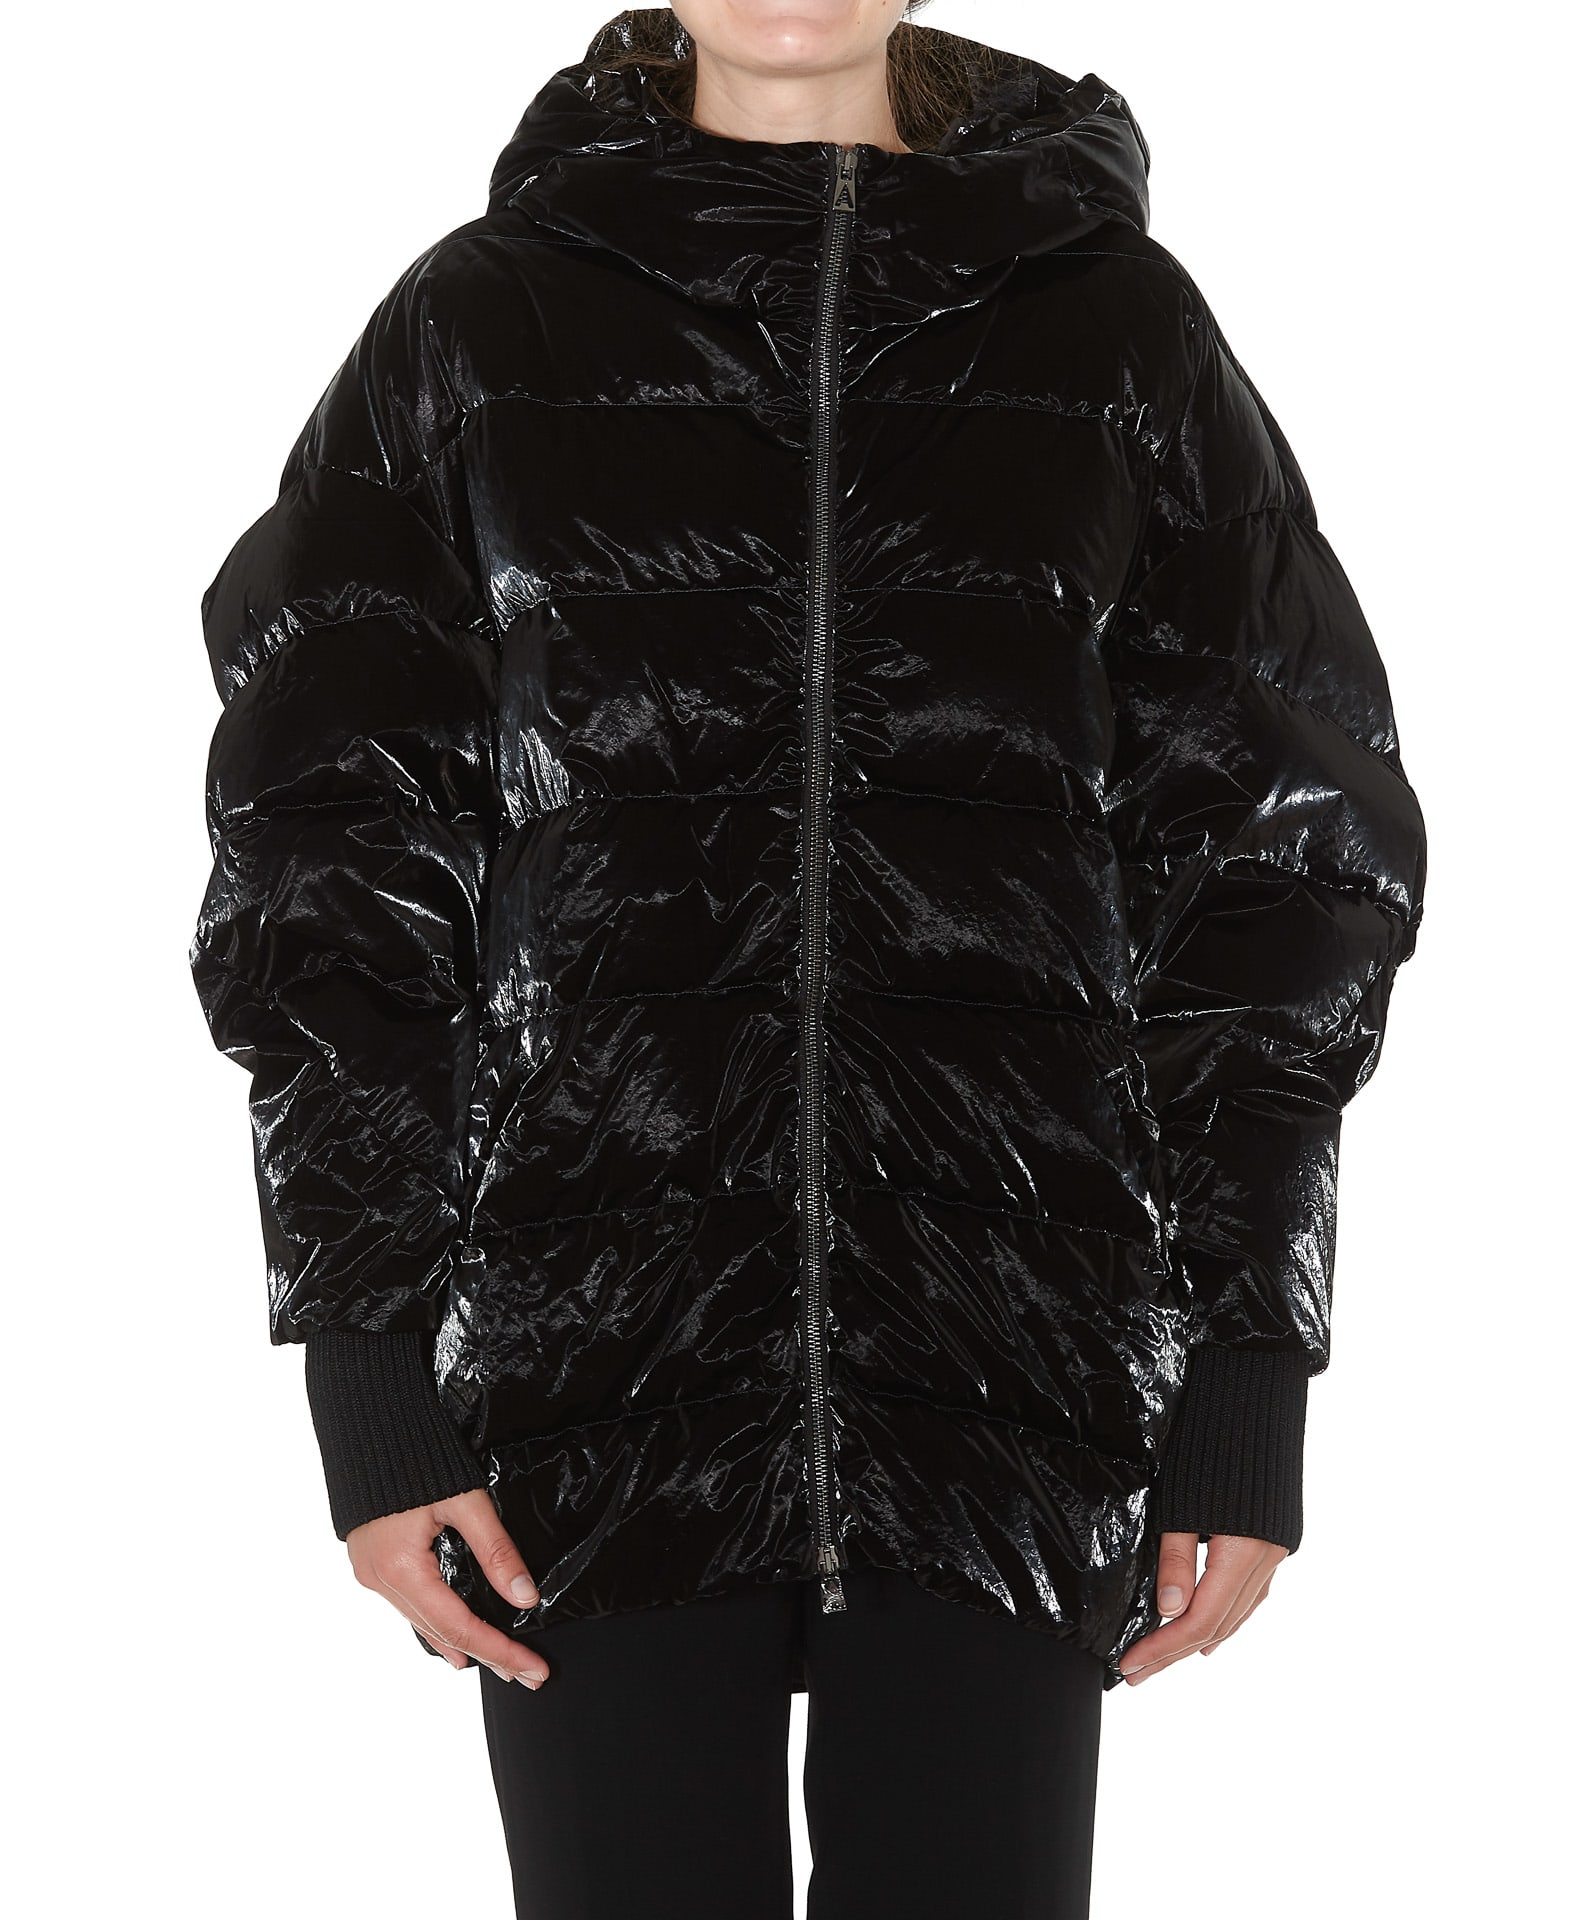 Ahirain Duchesse Caban Down Jacket